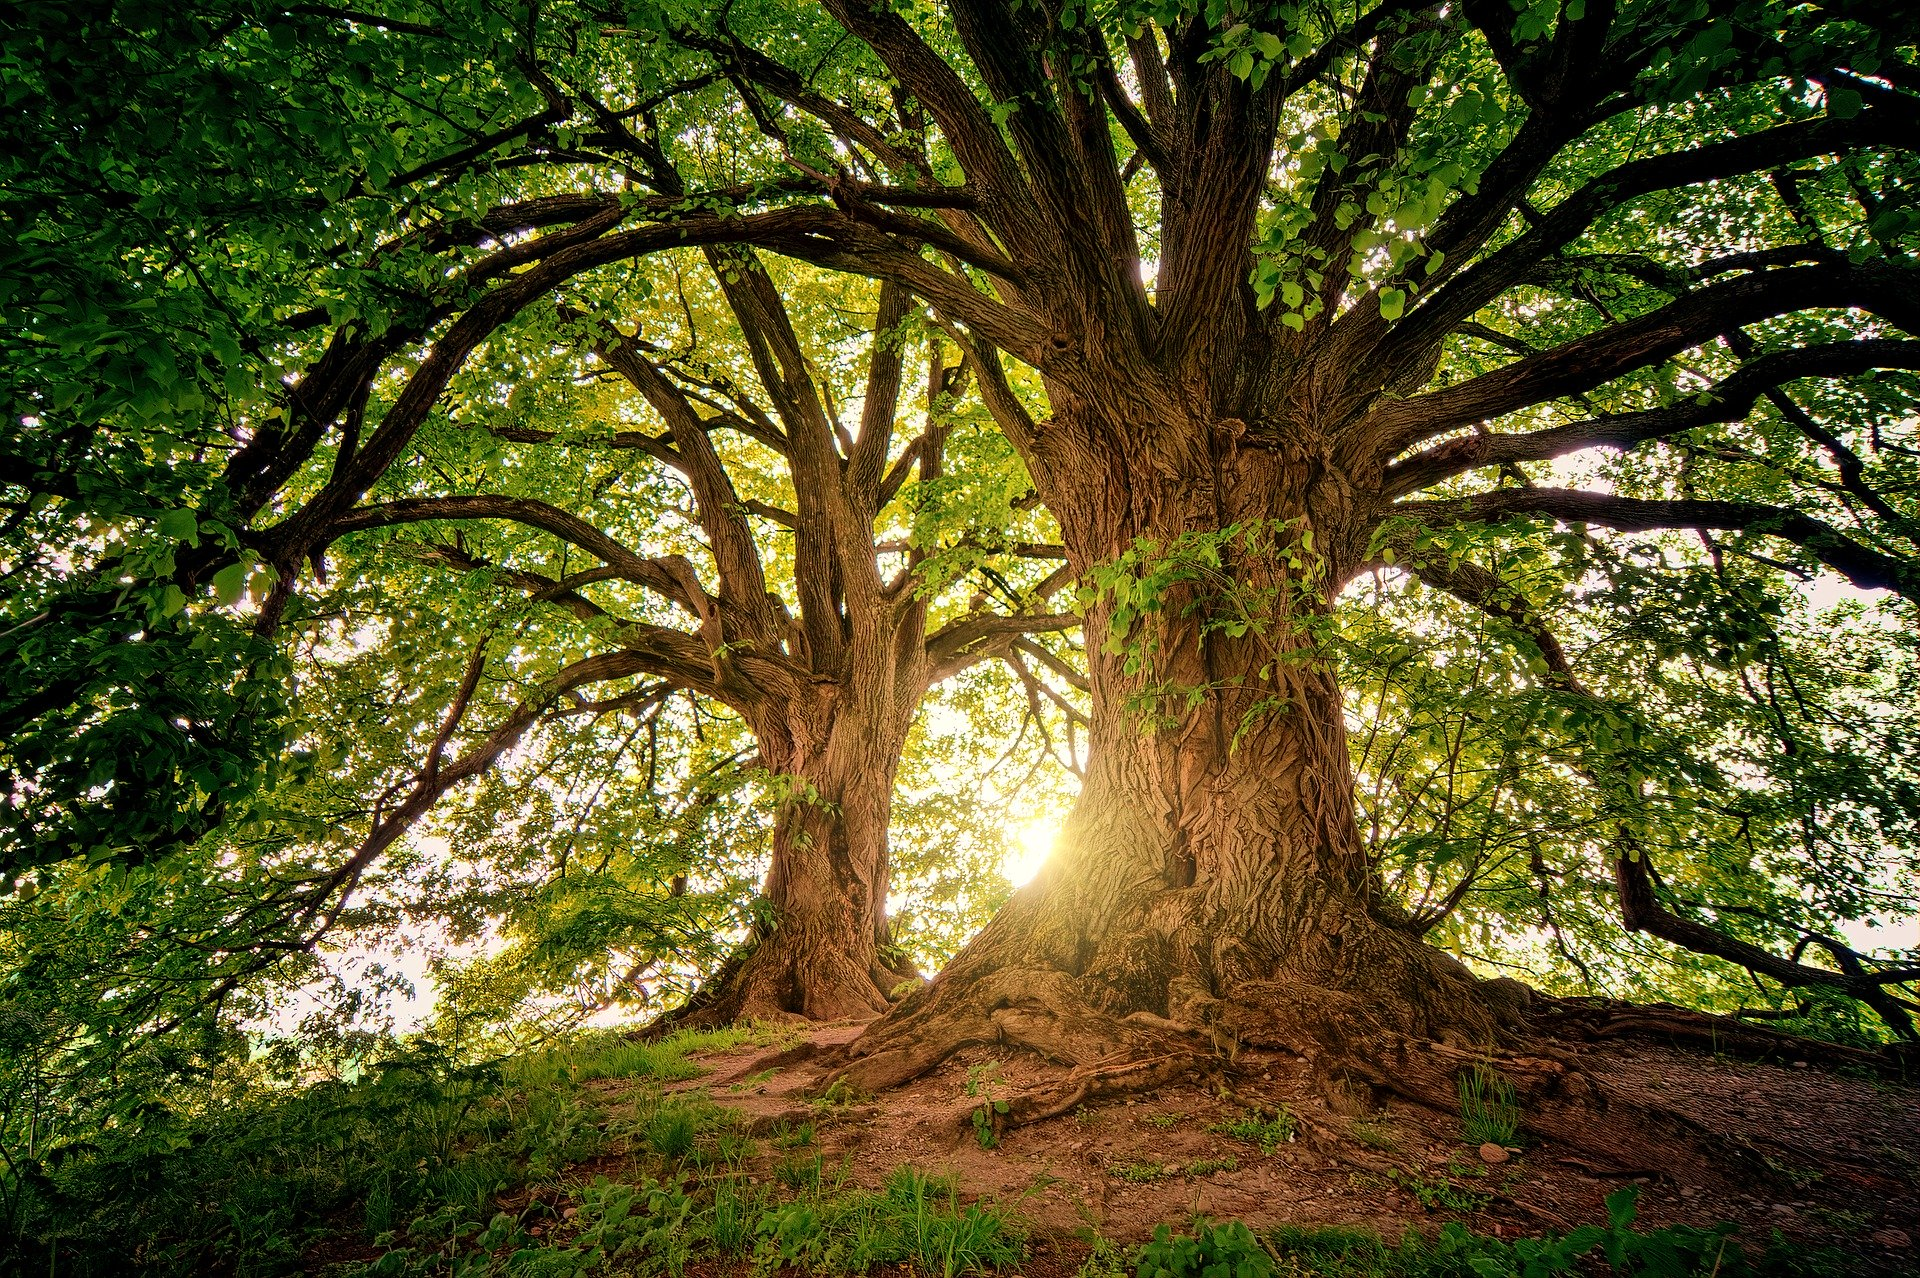 Our Riddle Game asked a question about trees. This is a beautiful picture of two trees in a mystical forest.